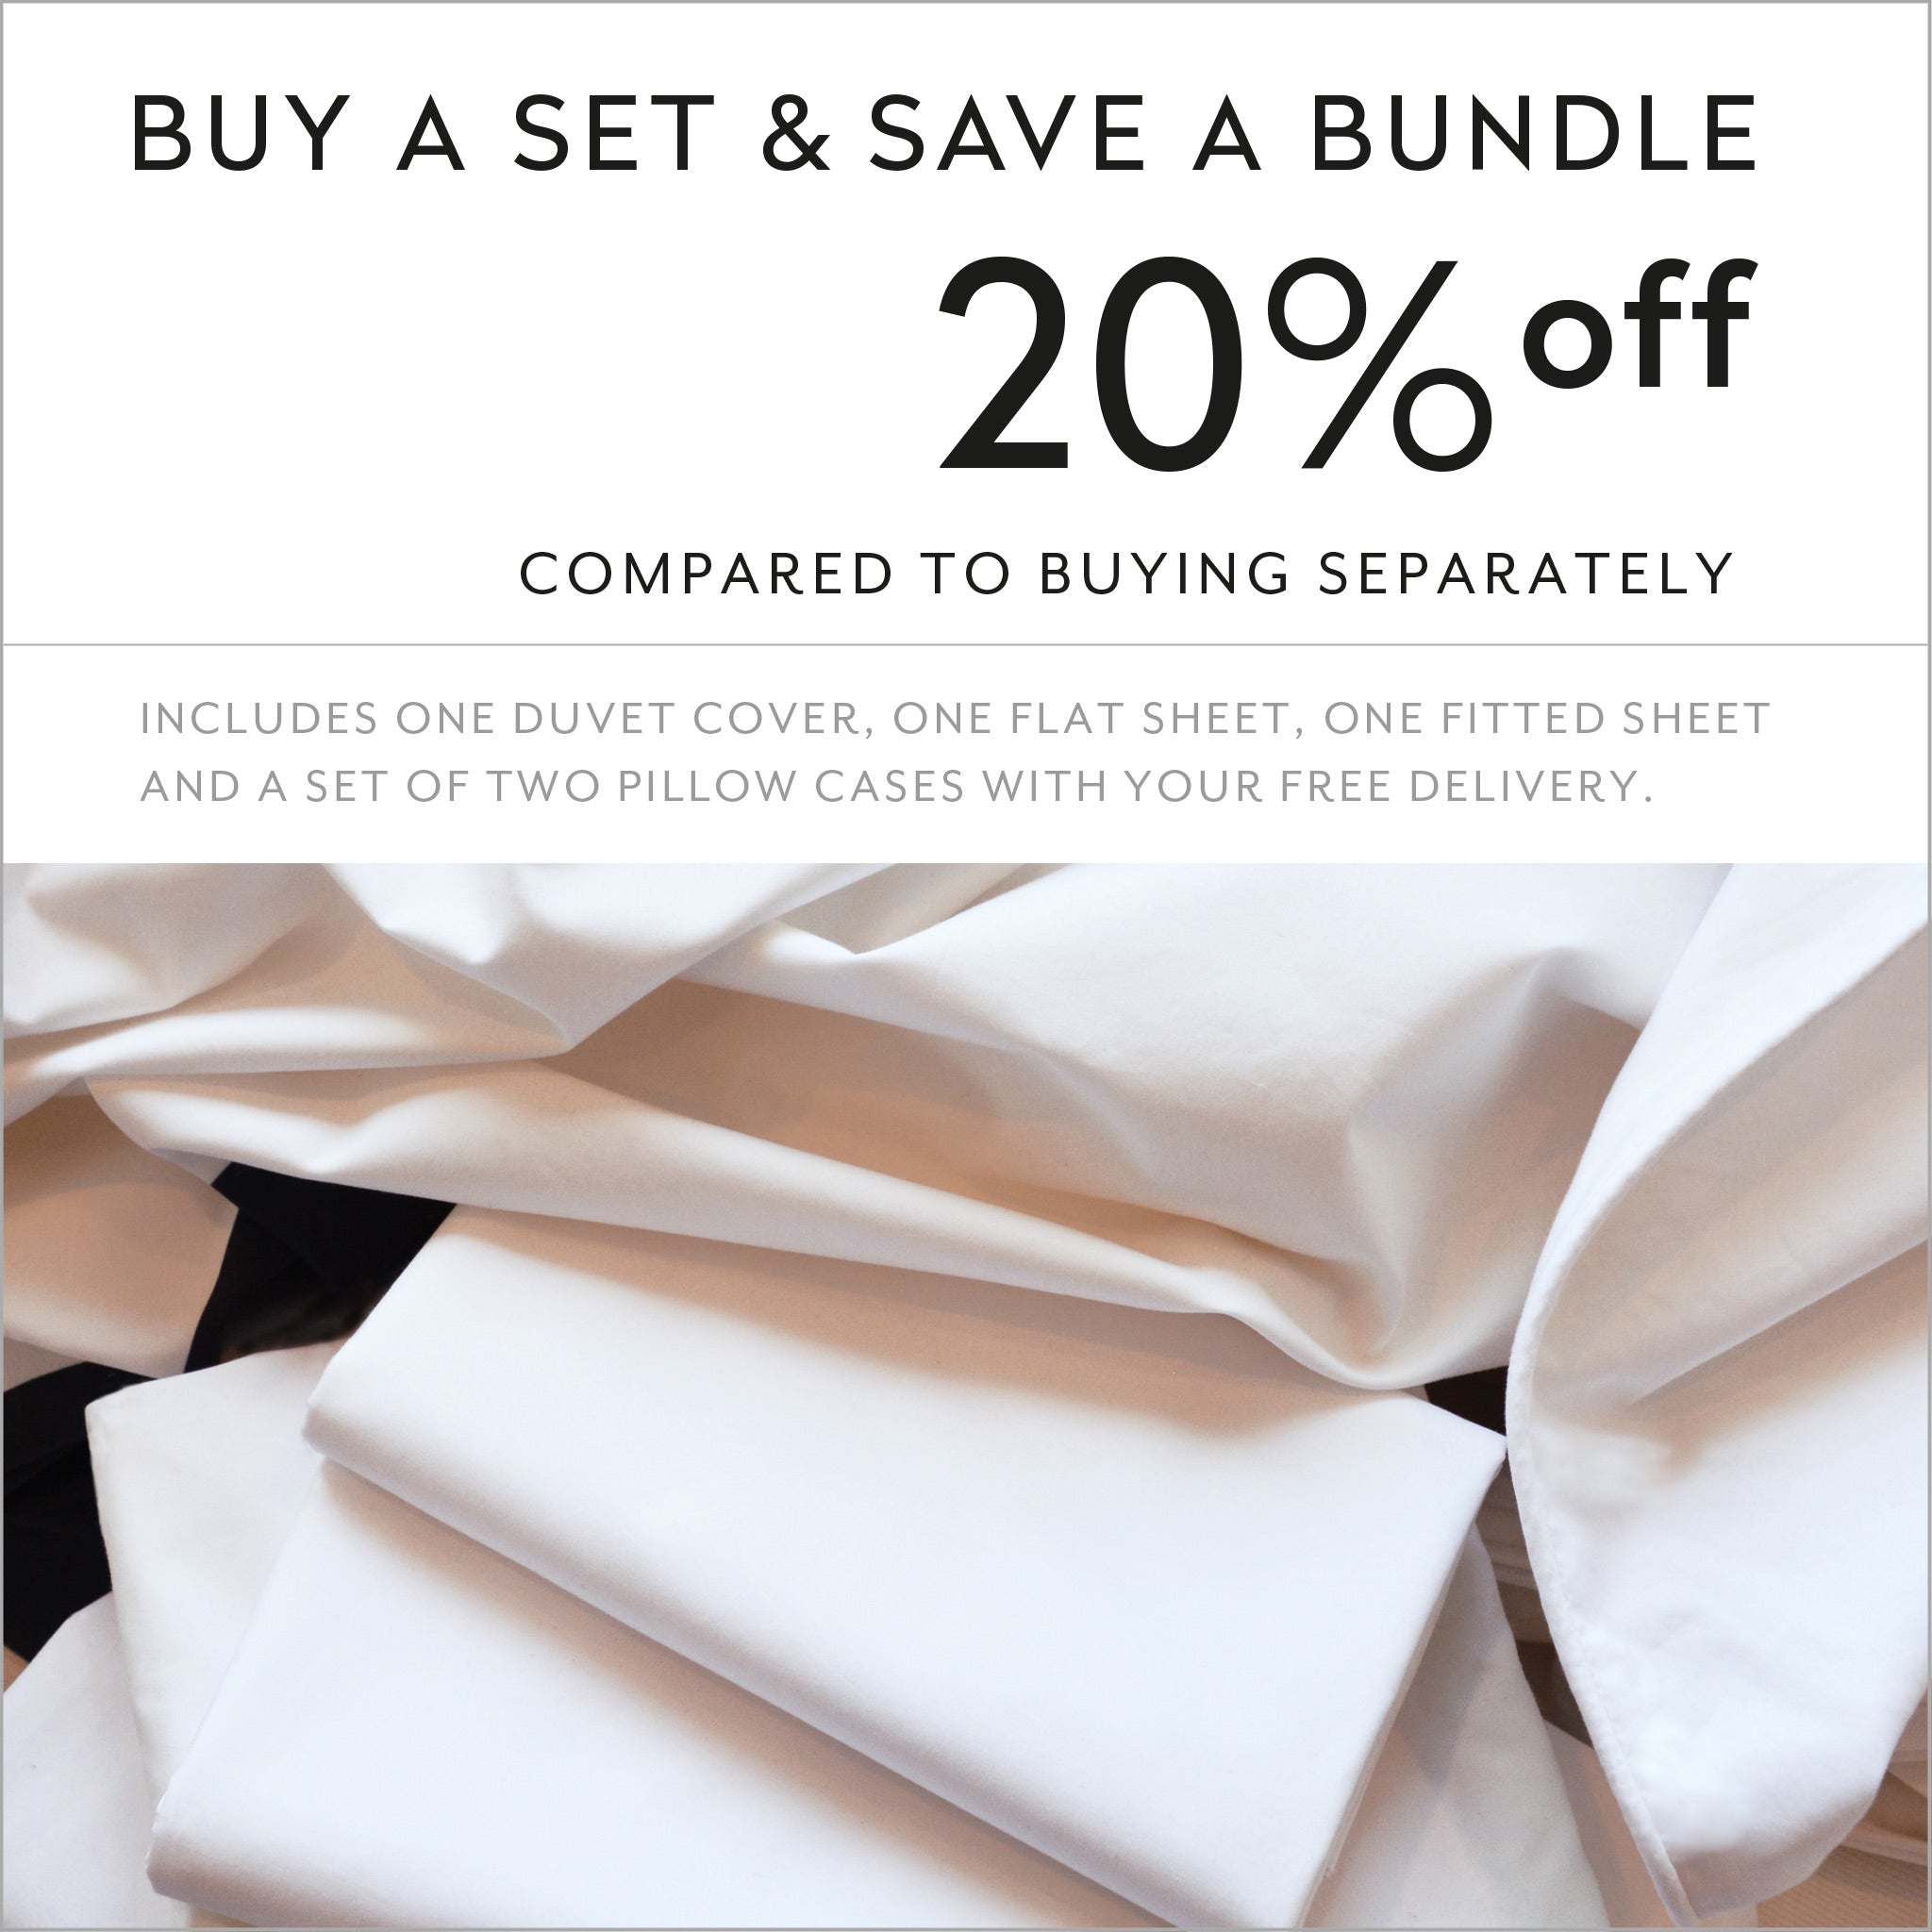 Buy a set and save 20% compared to buying separately cotton sheets and duvet cover design Easy to Love